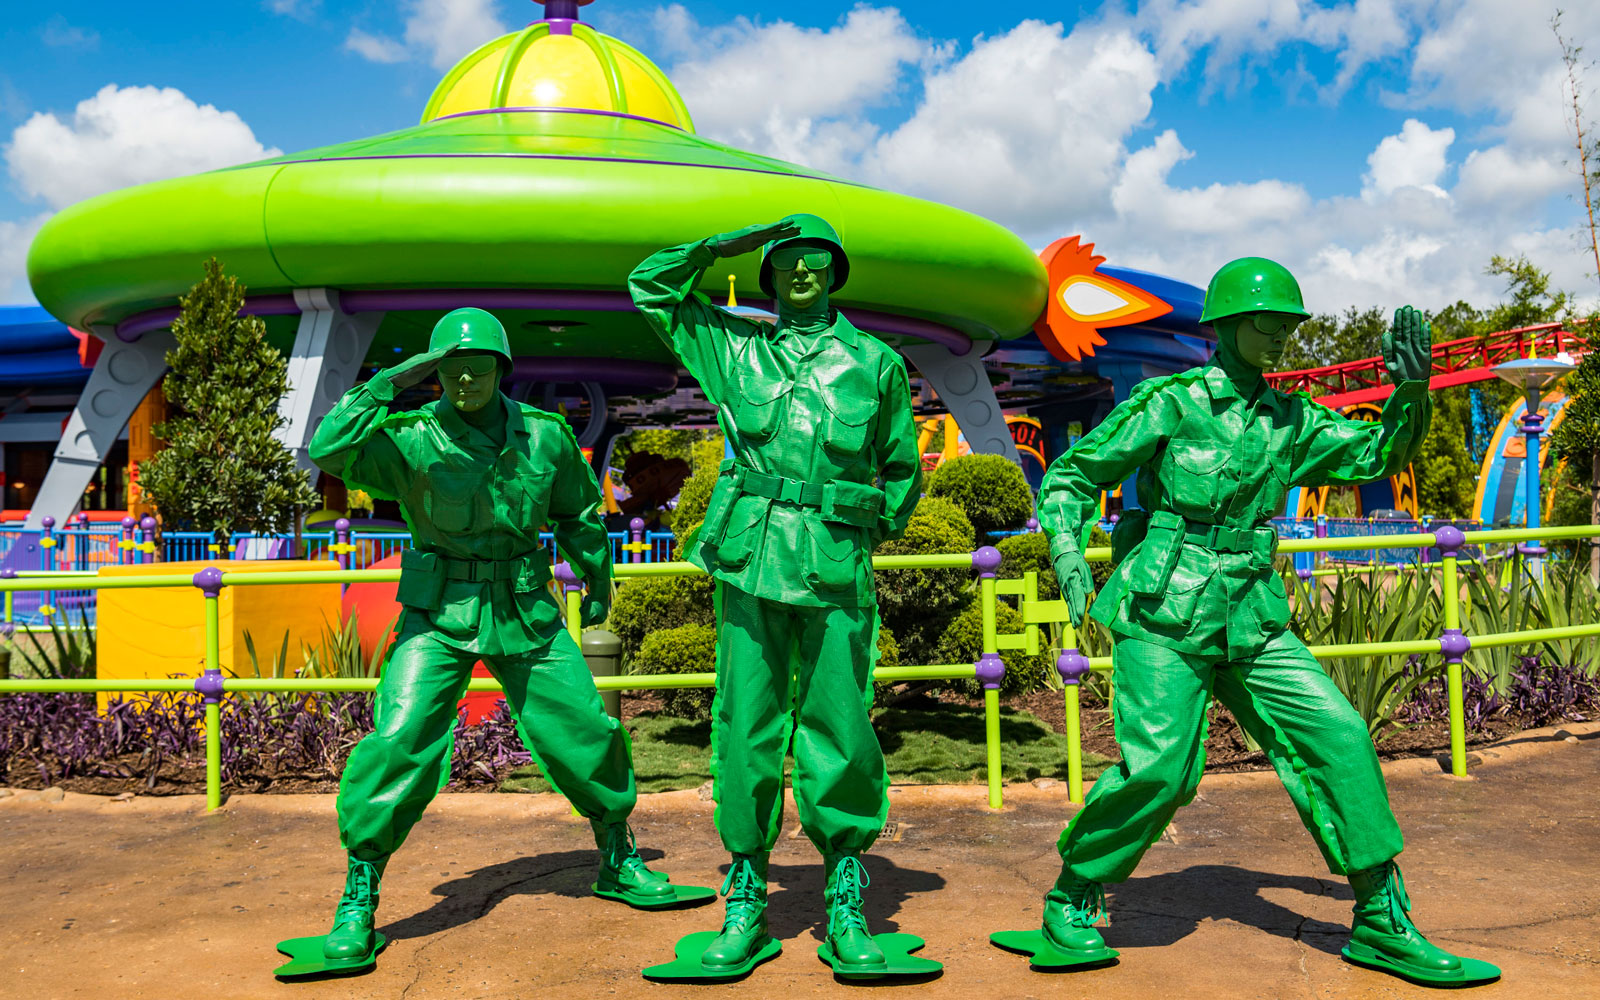 Toy Story Land at Disney's Hollywood Studios will include an army of green men.